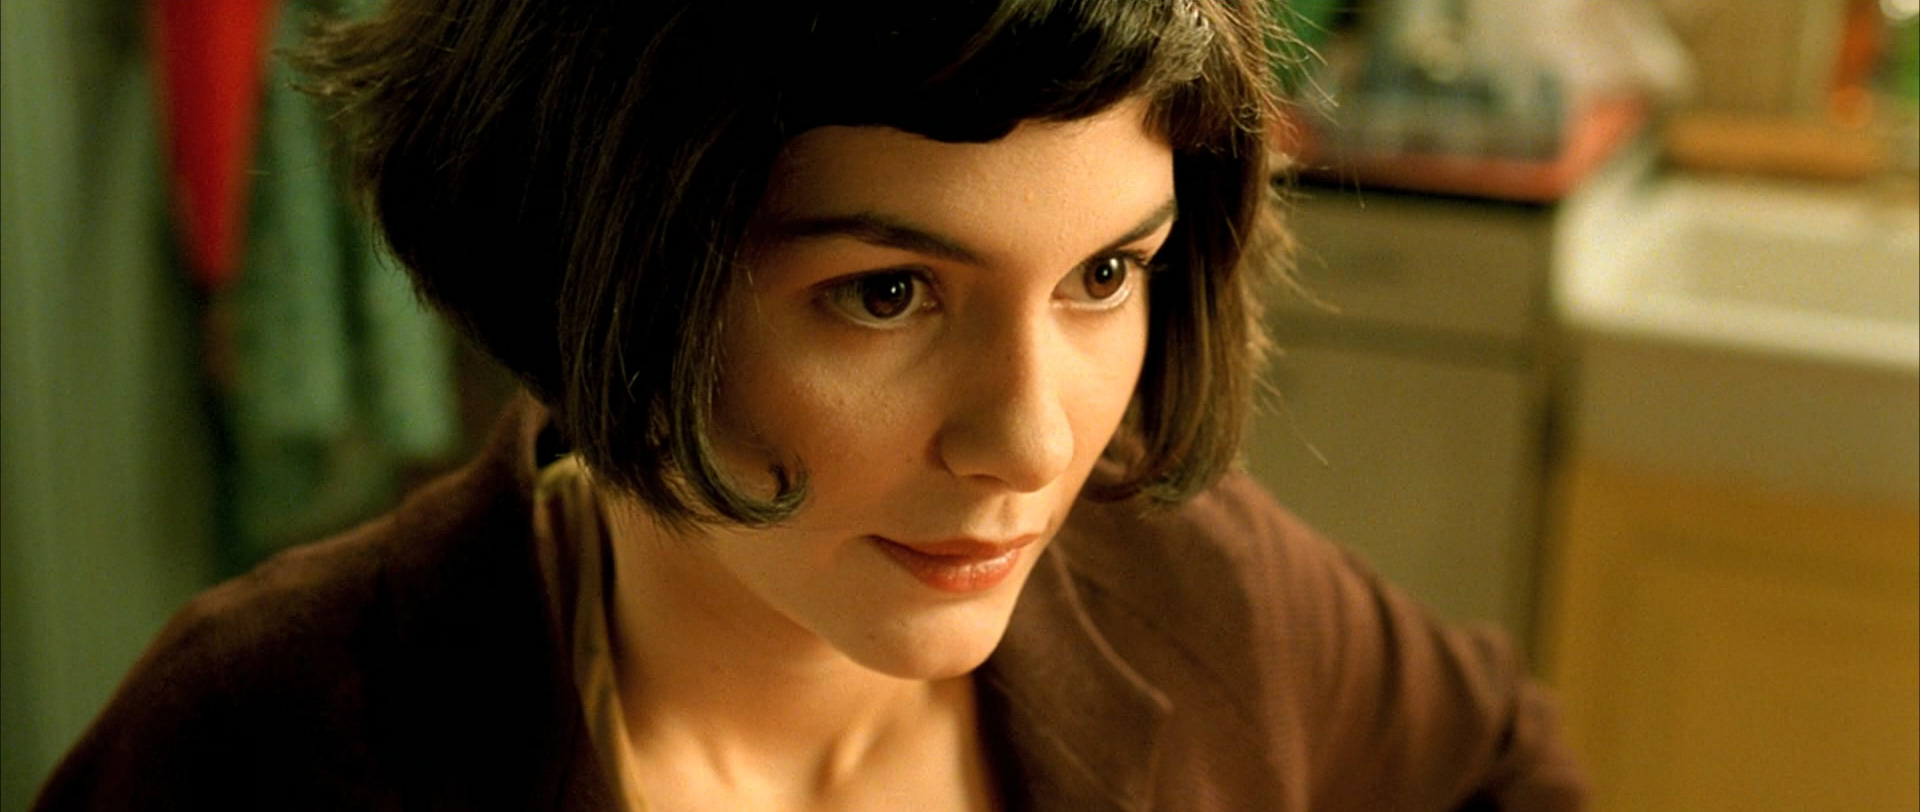 amelie-0230